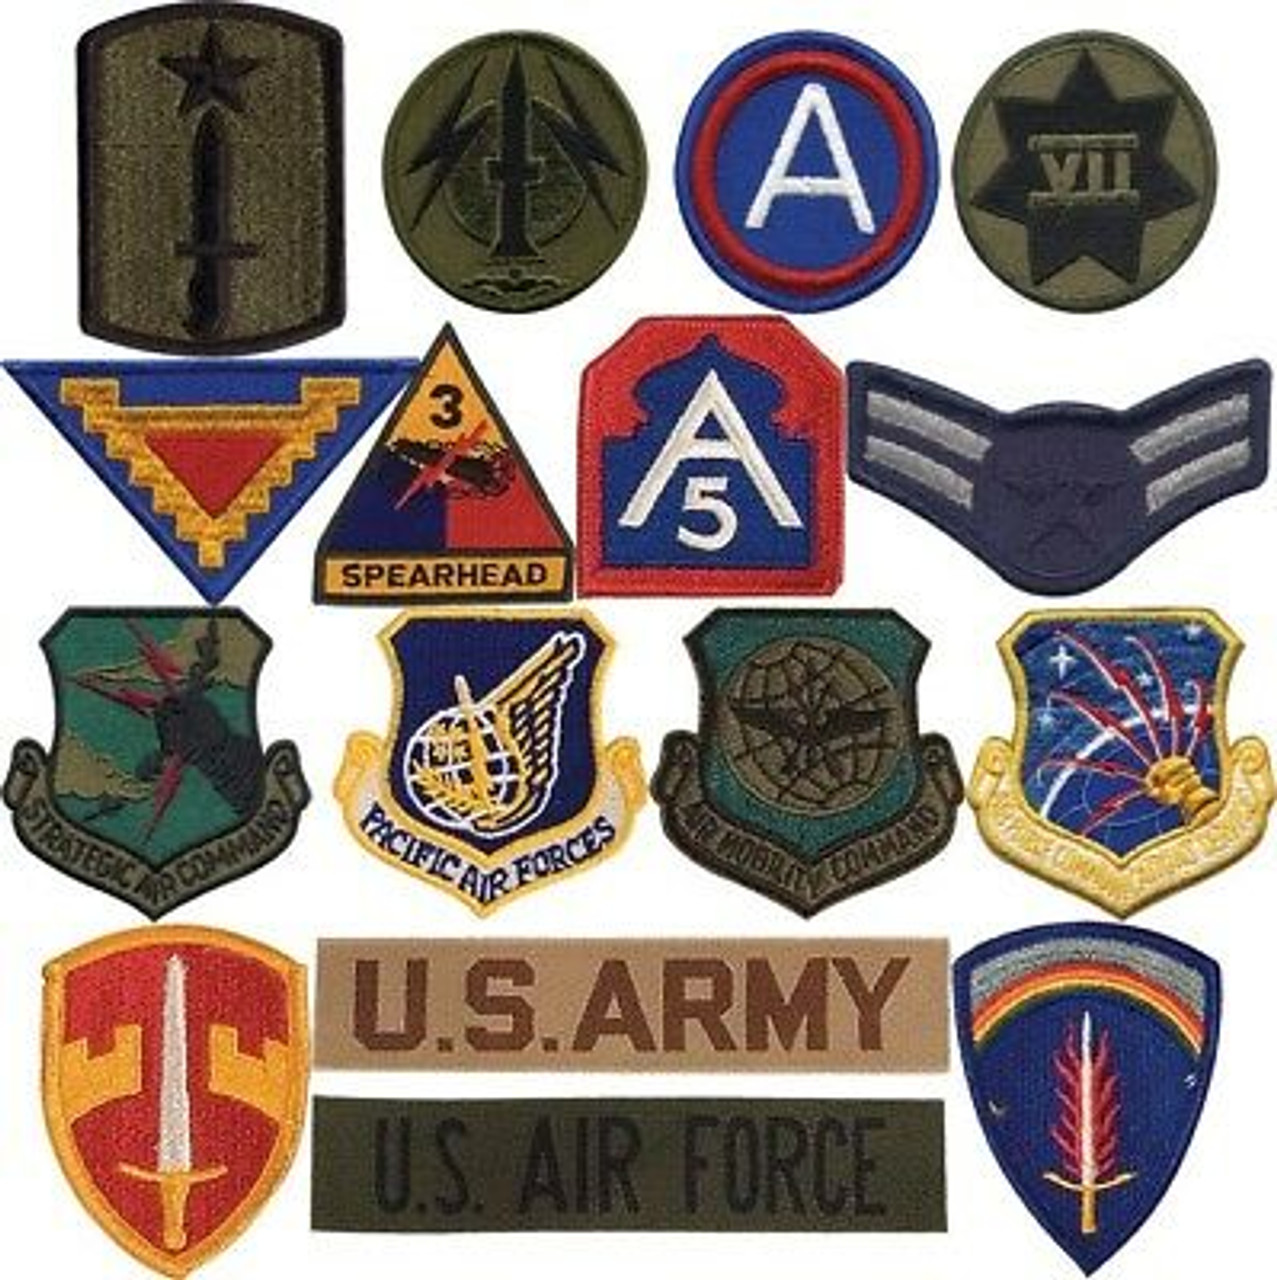 500 Patches Military Army Air Force Assortment Iron on Sew Patches